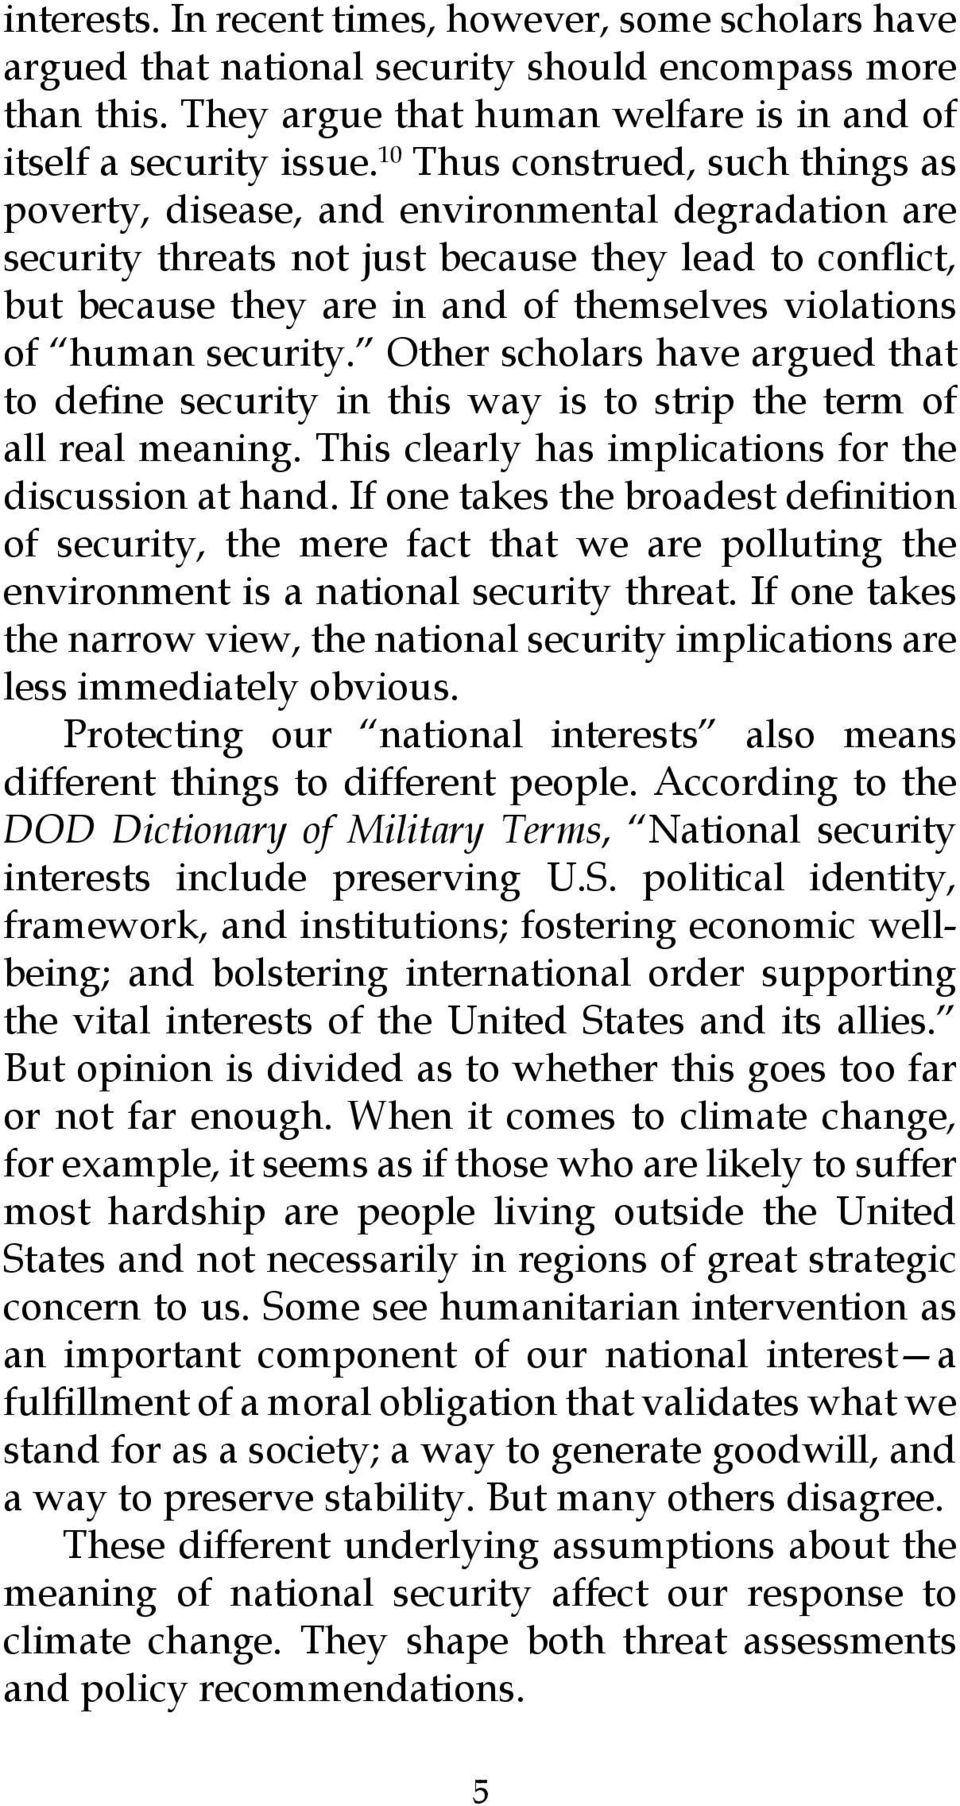 human security. Other scholars have argued that to define security in this way is to strip the term of all real meaning. This clearly has implications for the discussion at hand.